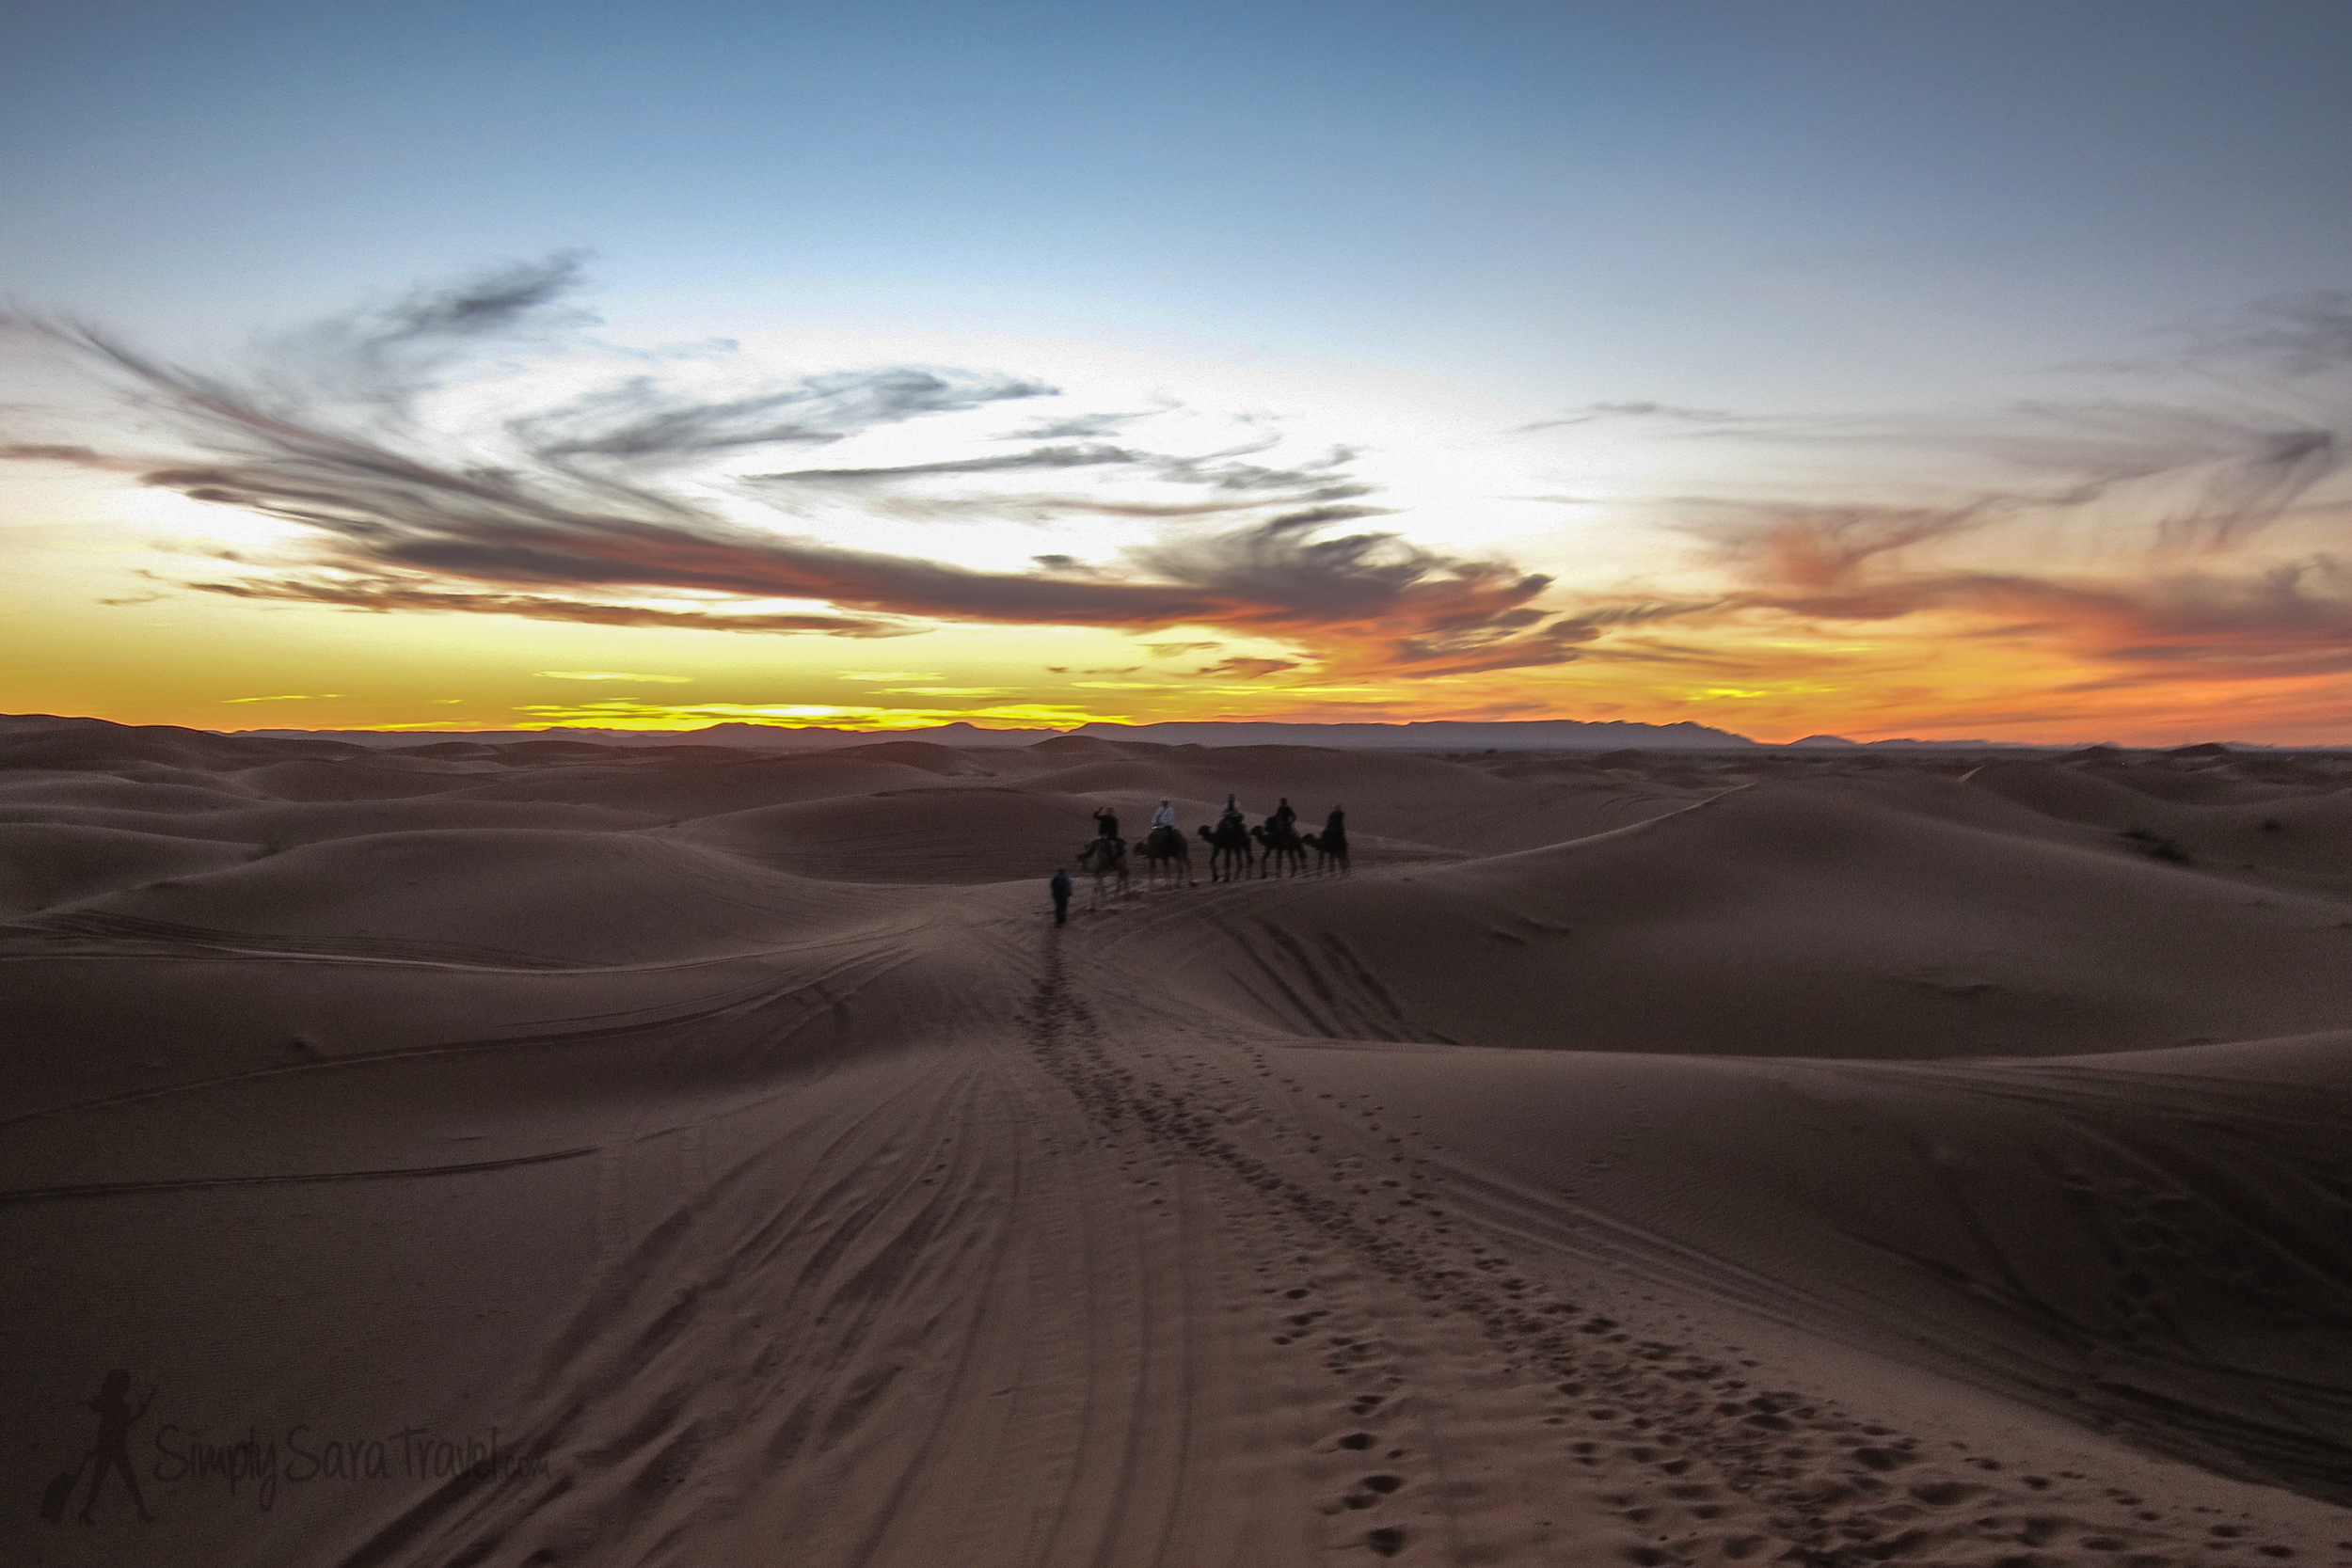 The last raysof sunset on our camel trek en routeto aBerber camp, where we spent the night.